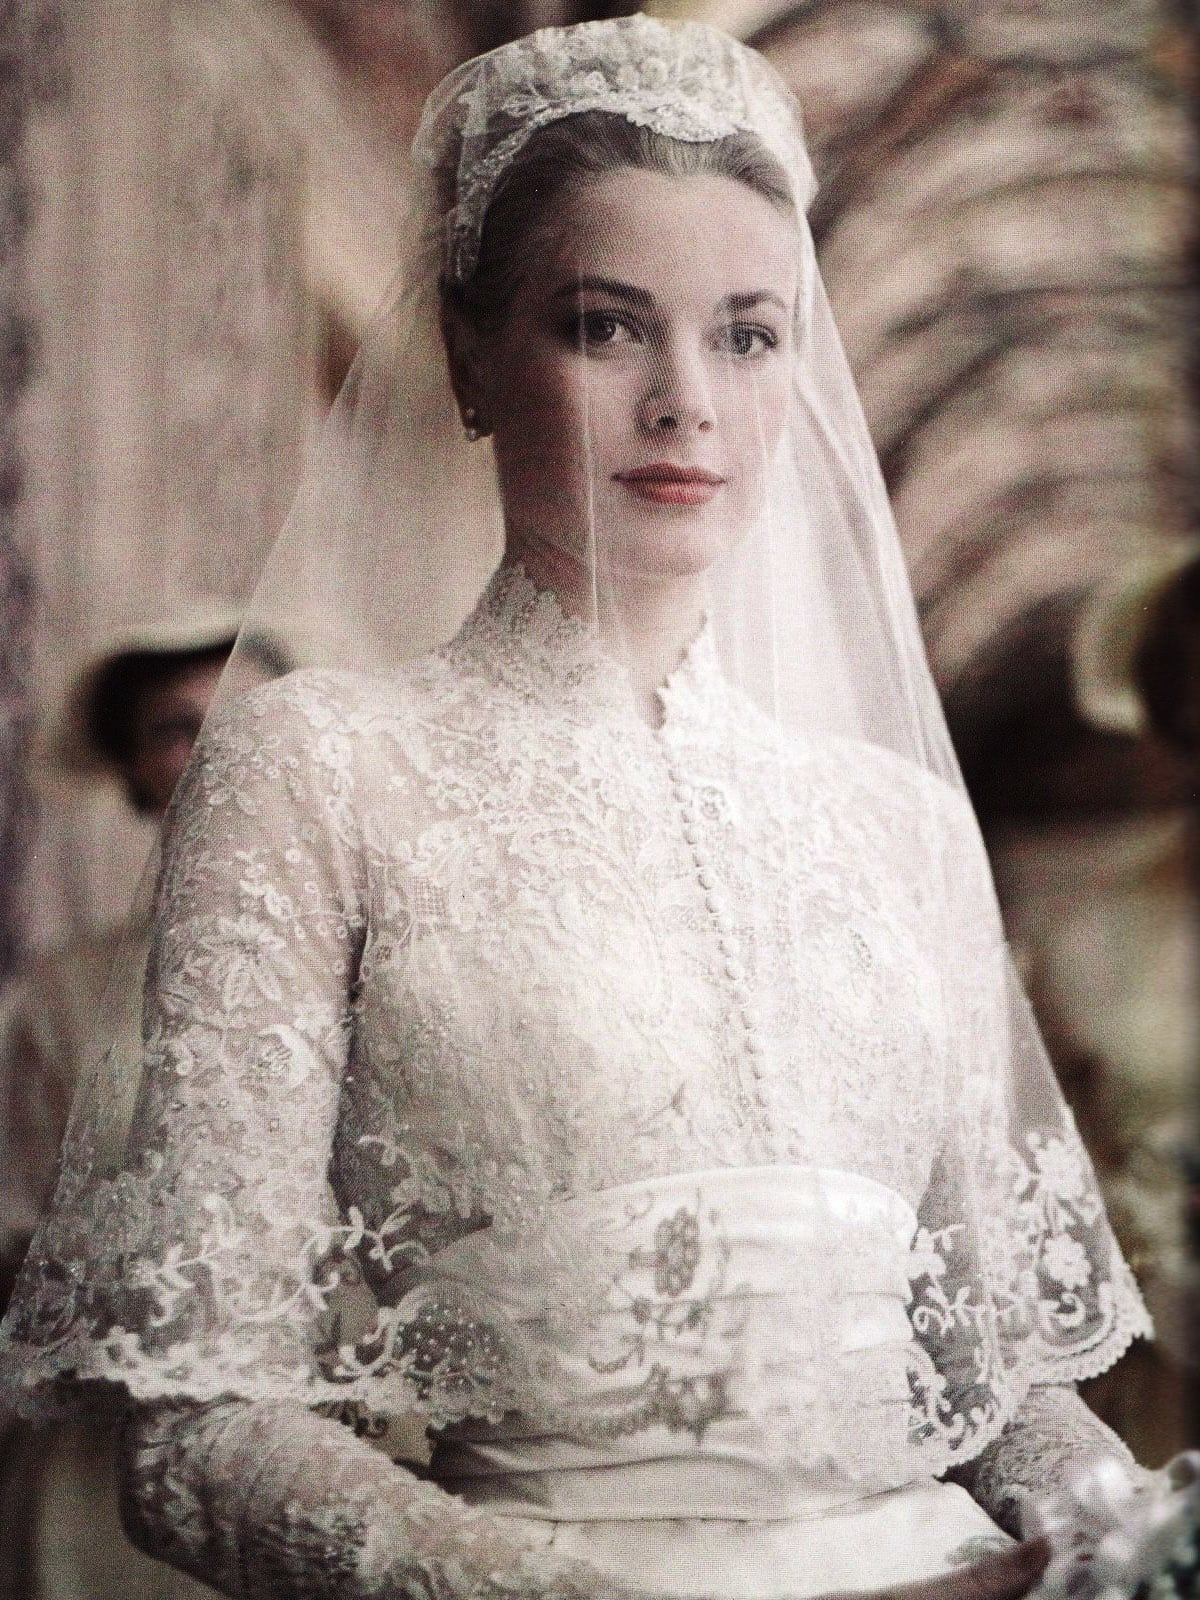 Kate Middleton\'s wedding gown draws comparisons to Princess Grace ...